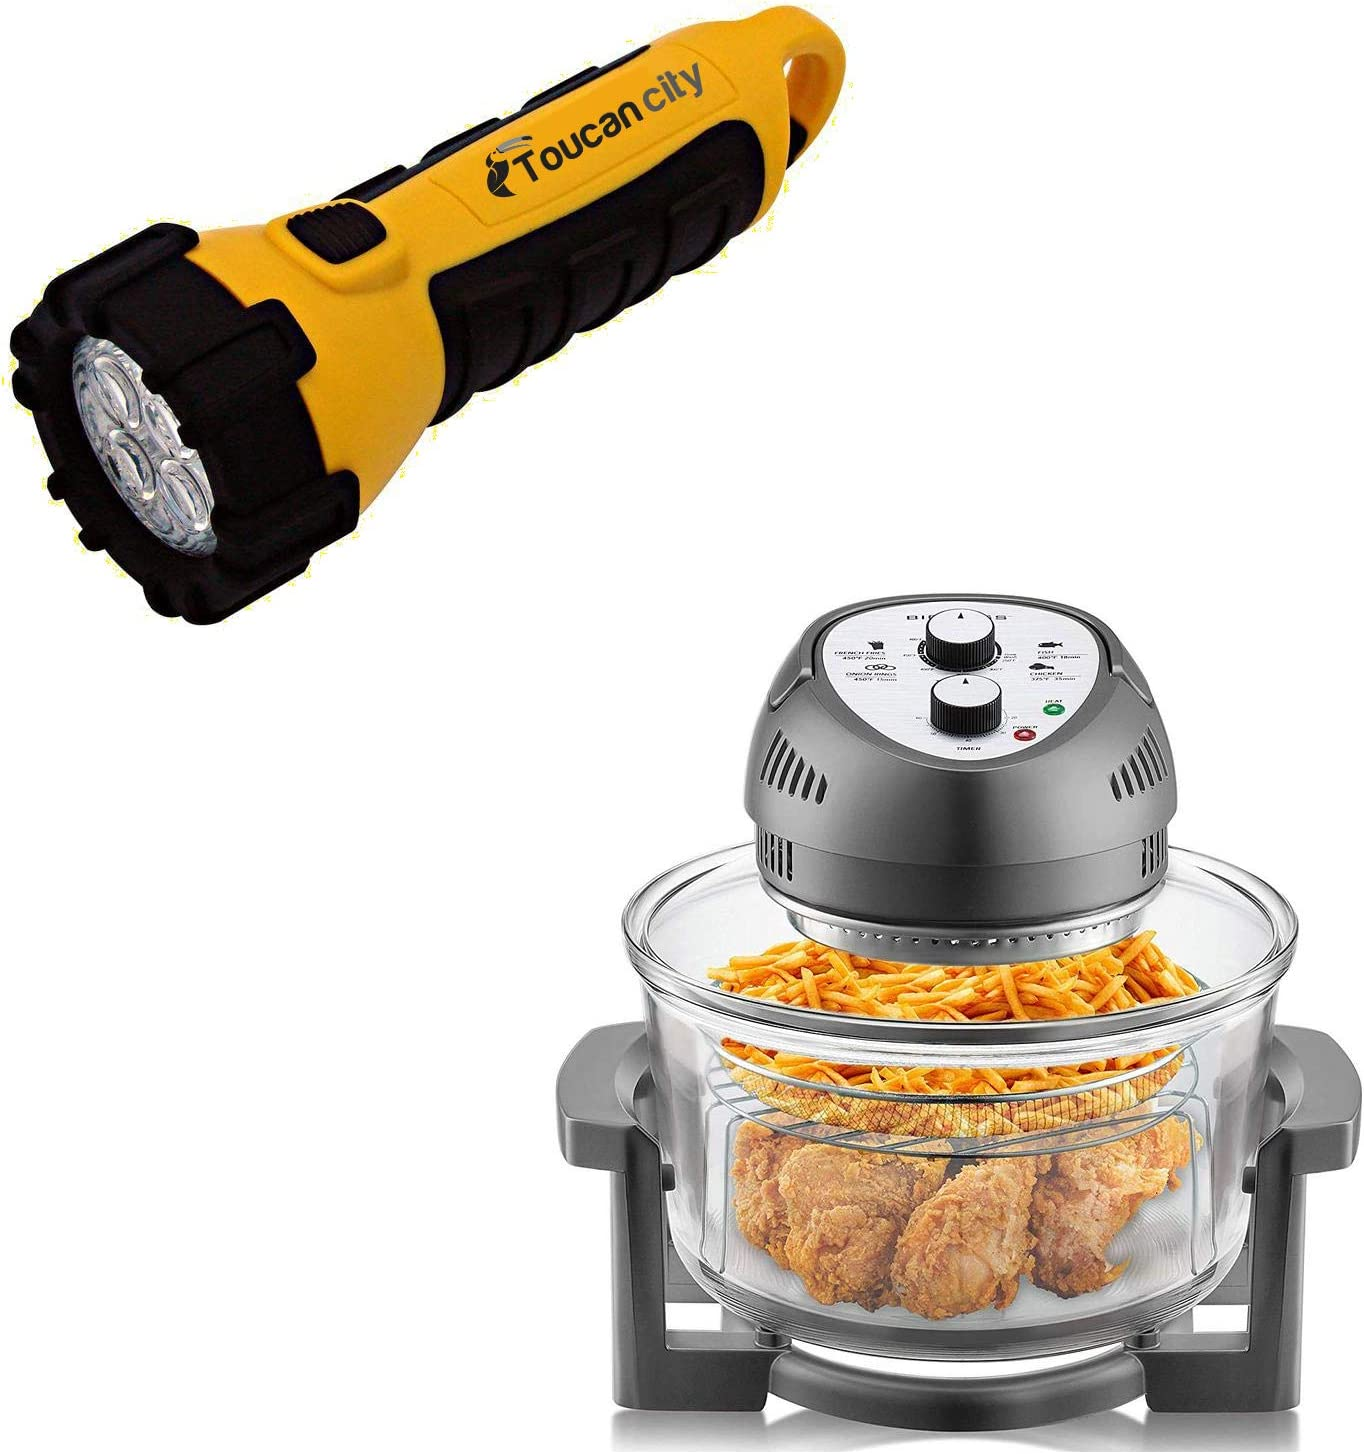 Toucan City LED Flashlight and Big Boss 16 Qt. Graphite Oil-Less Air Fryer with Built-In Timer 2249